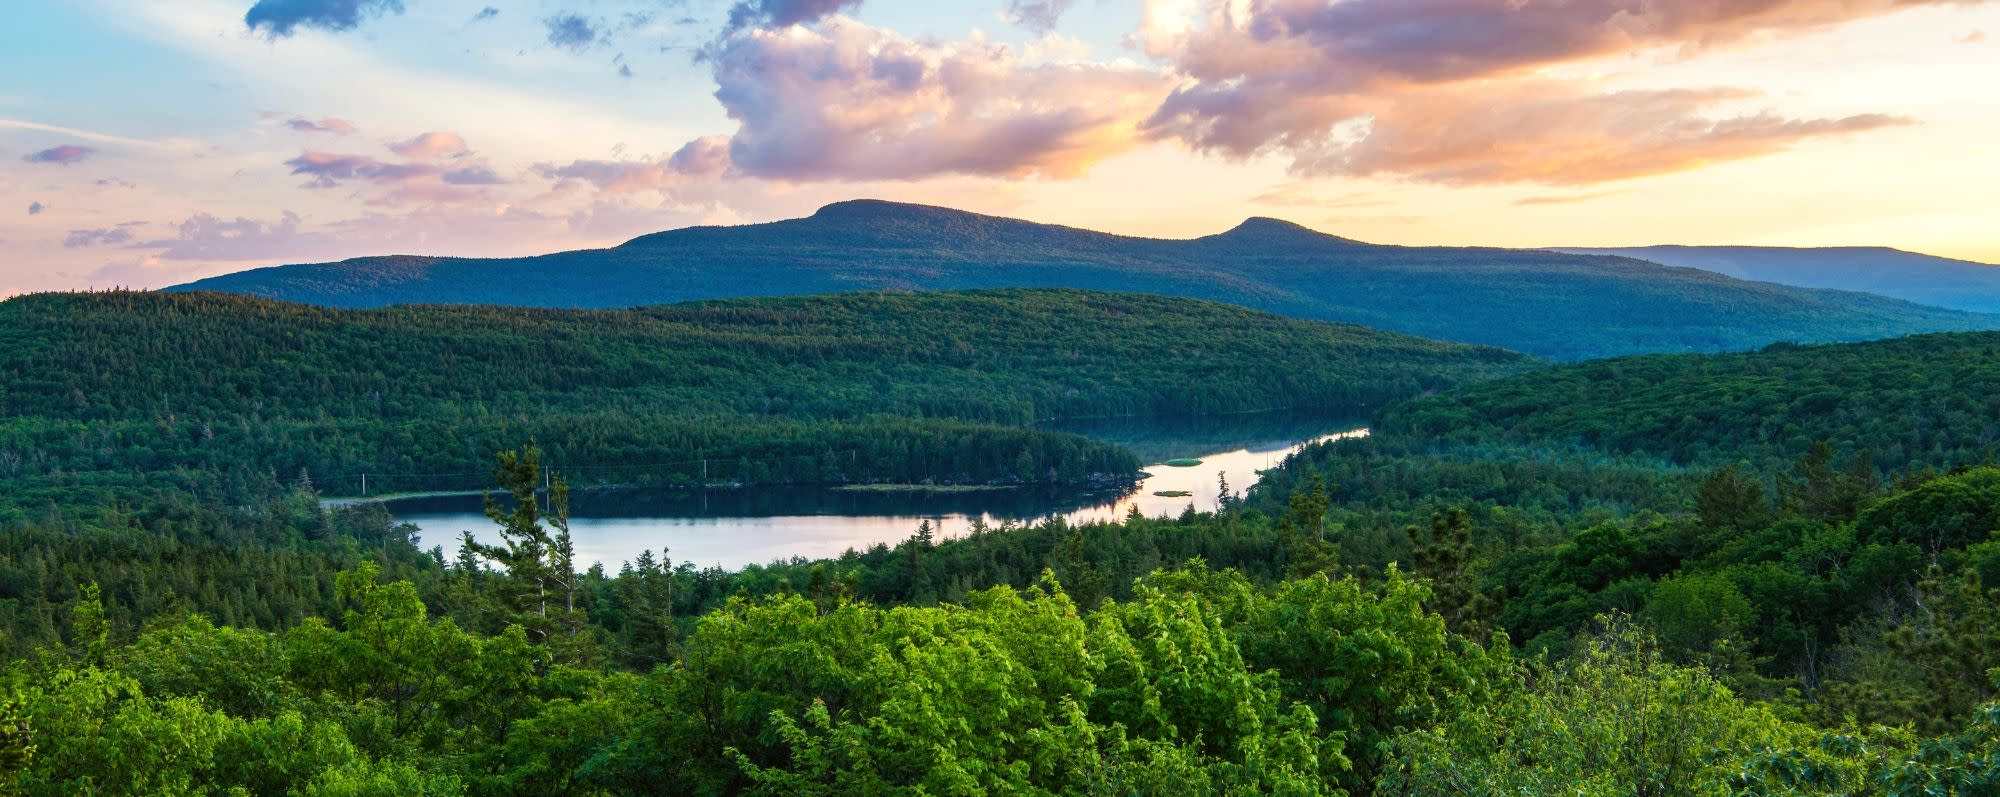 View from Sunset Rock at North-South Lake Campground, Haines Falls, NY, Greene County, Catskill Region